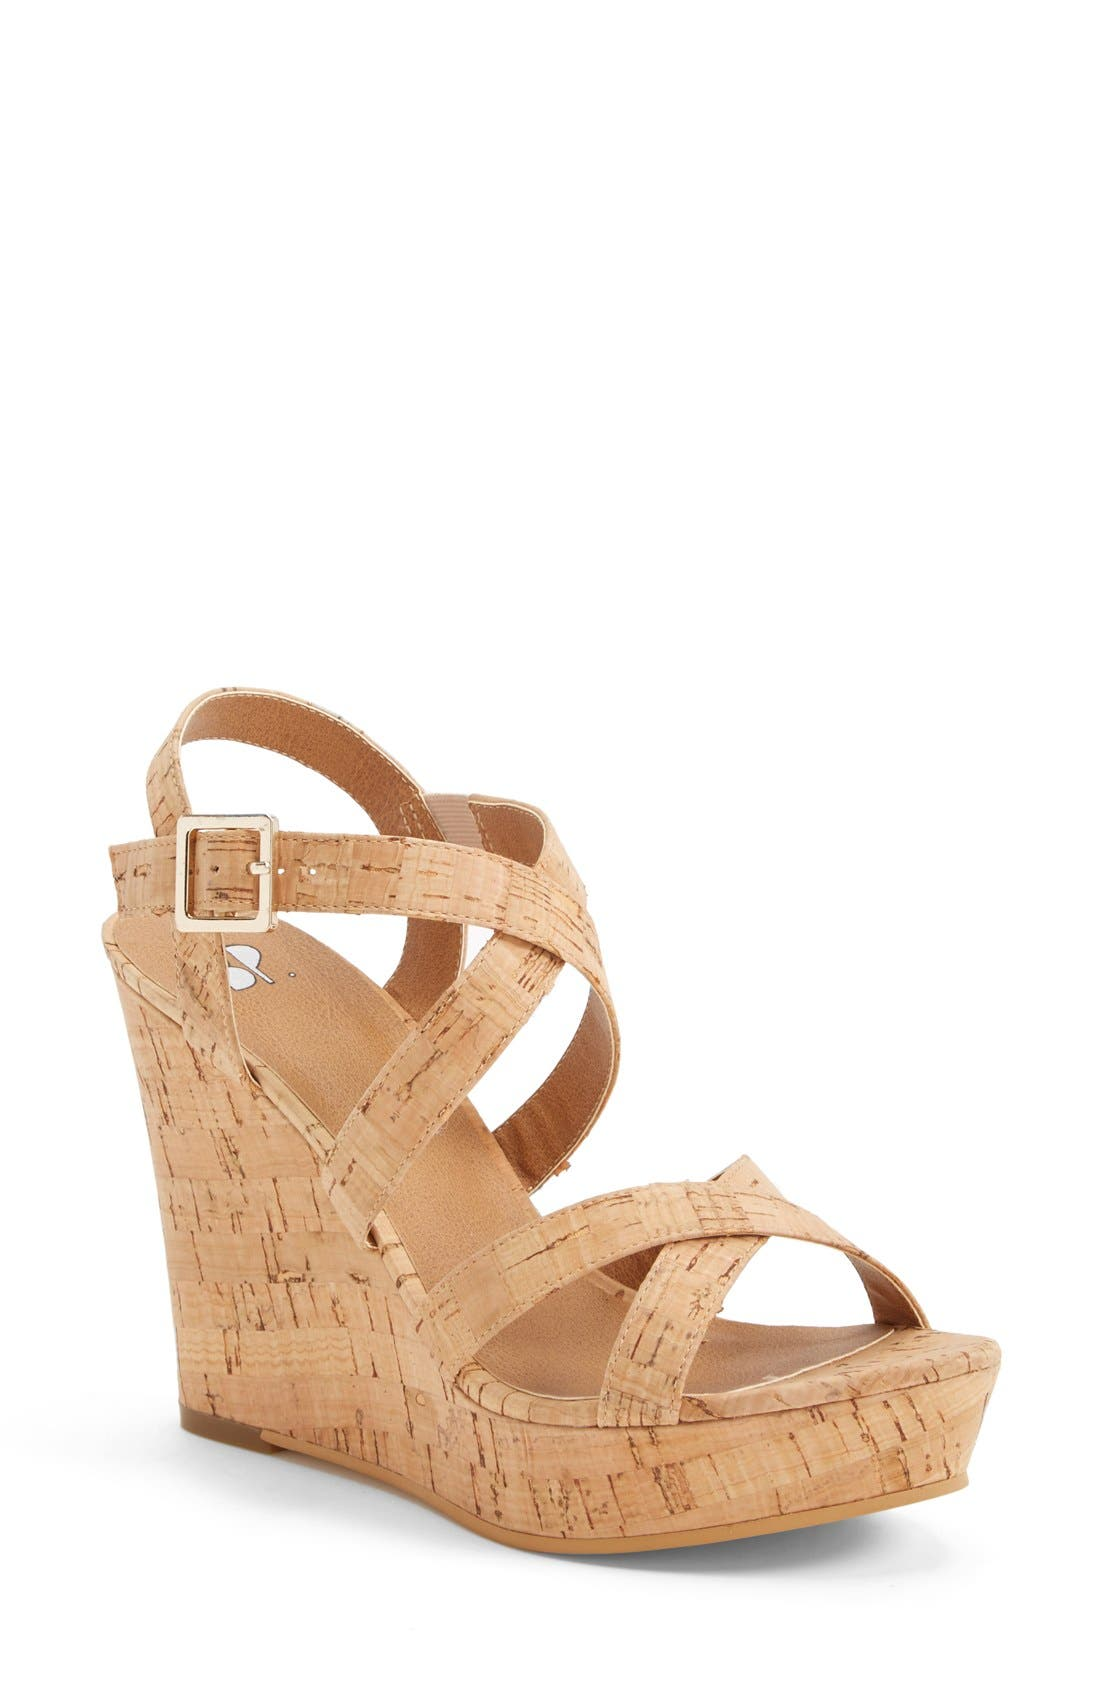 Main Image - BP. 'Summers' Wedge Sandal (Women)